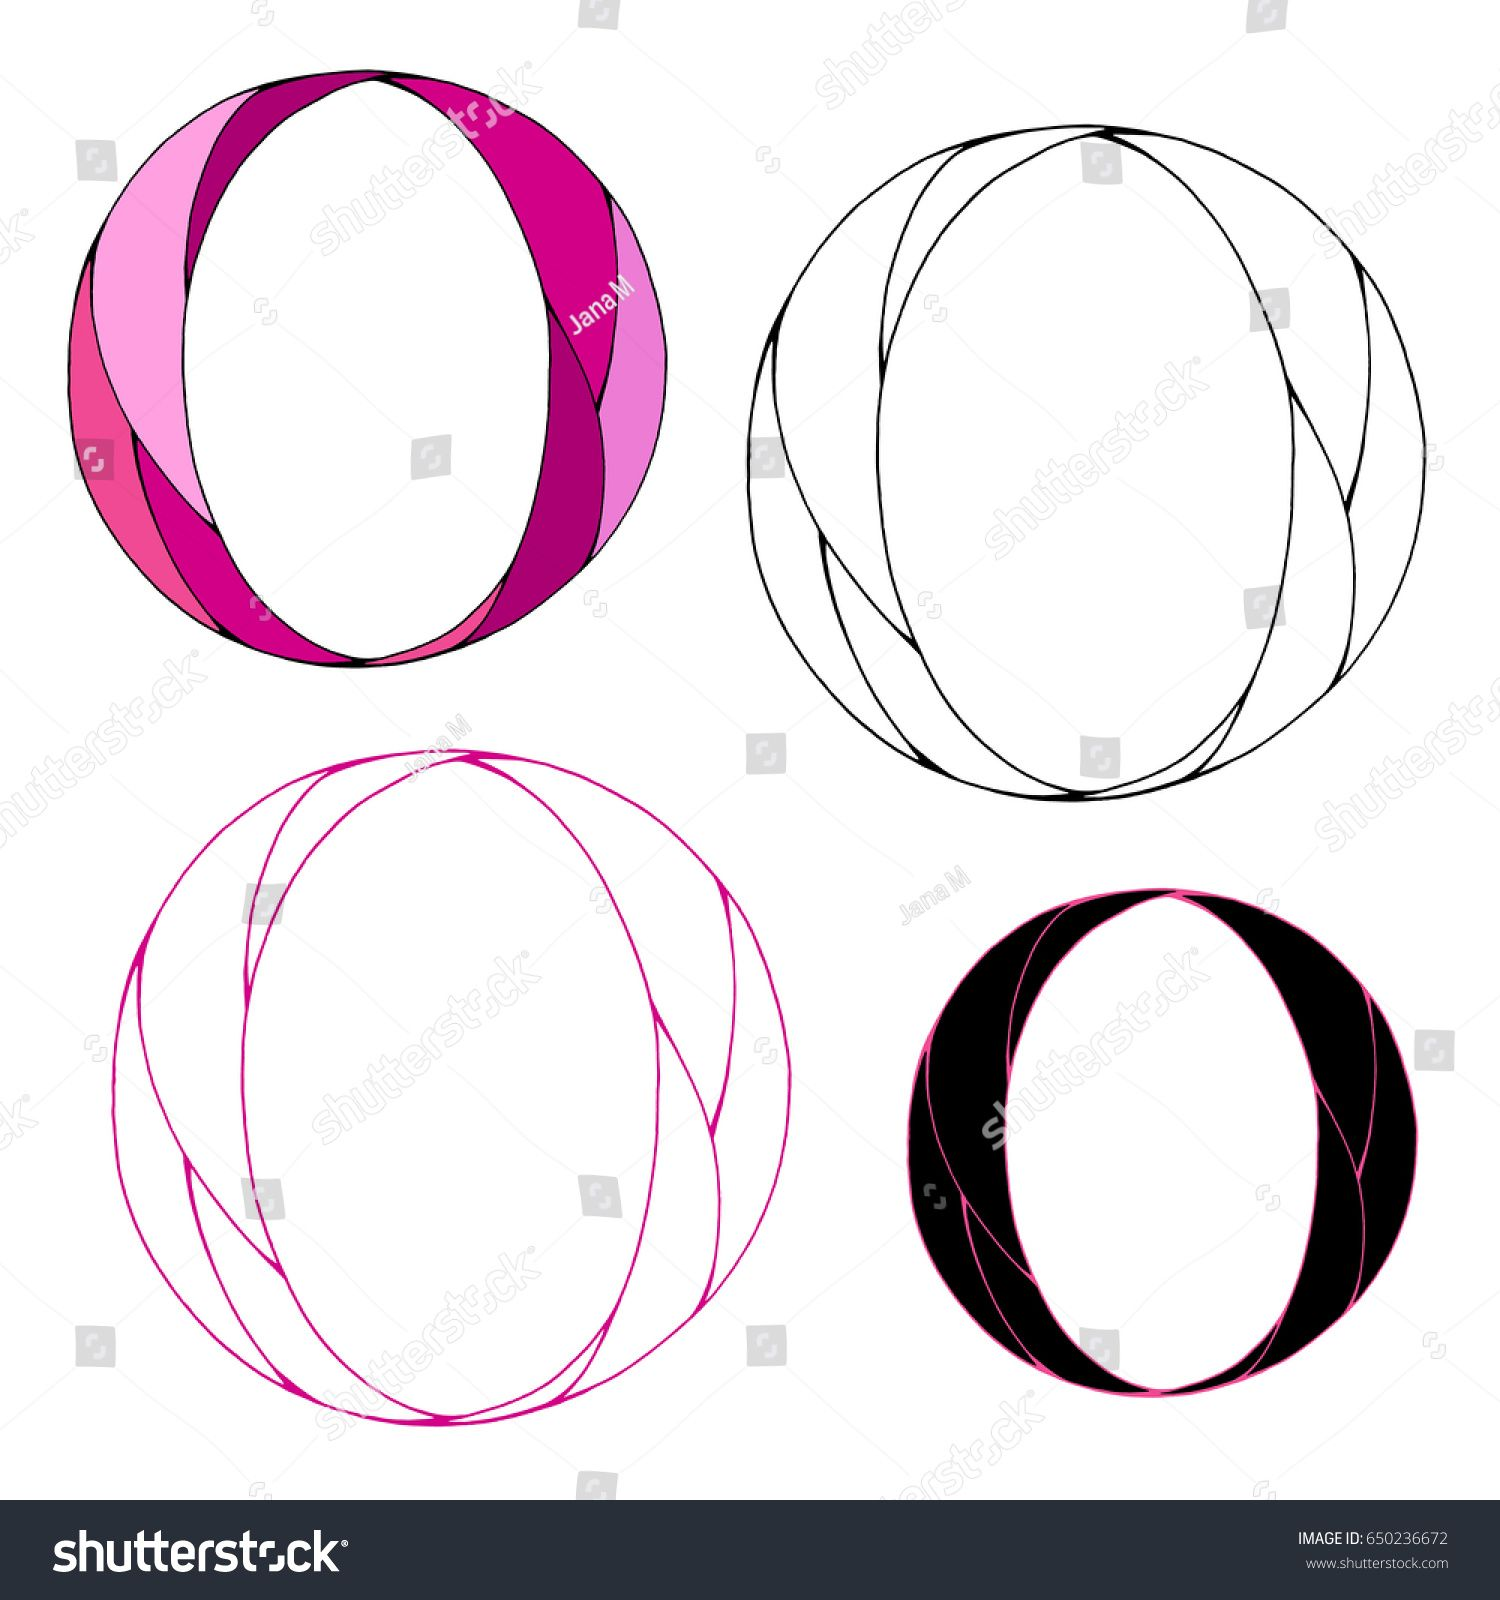 Variations Of The Letter O